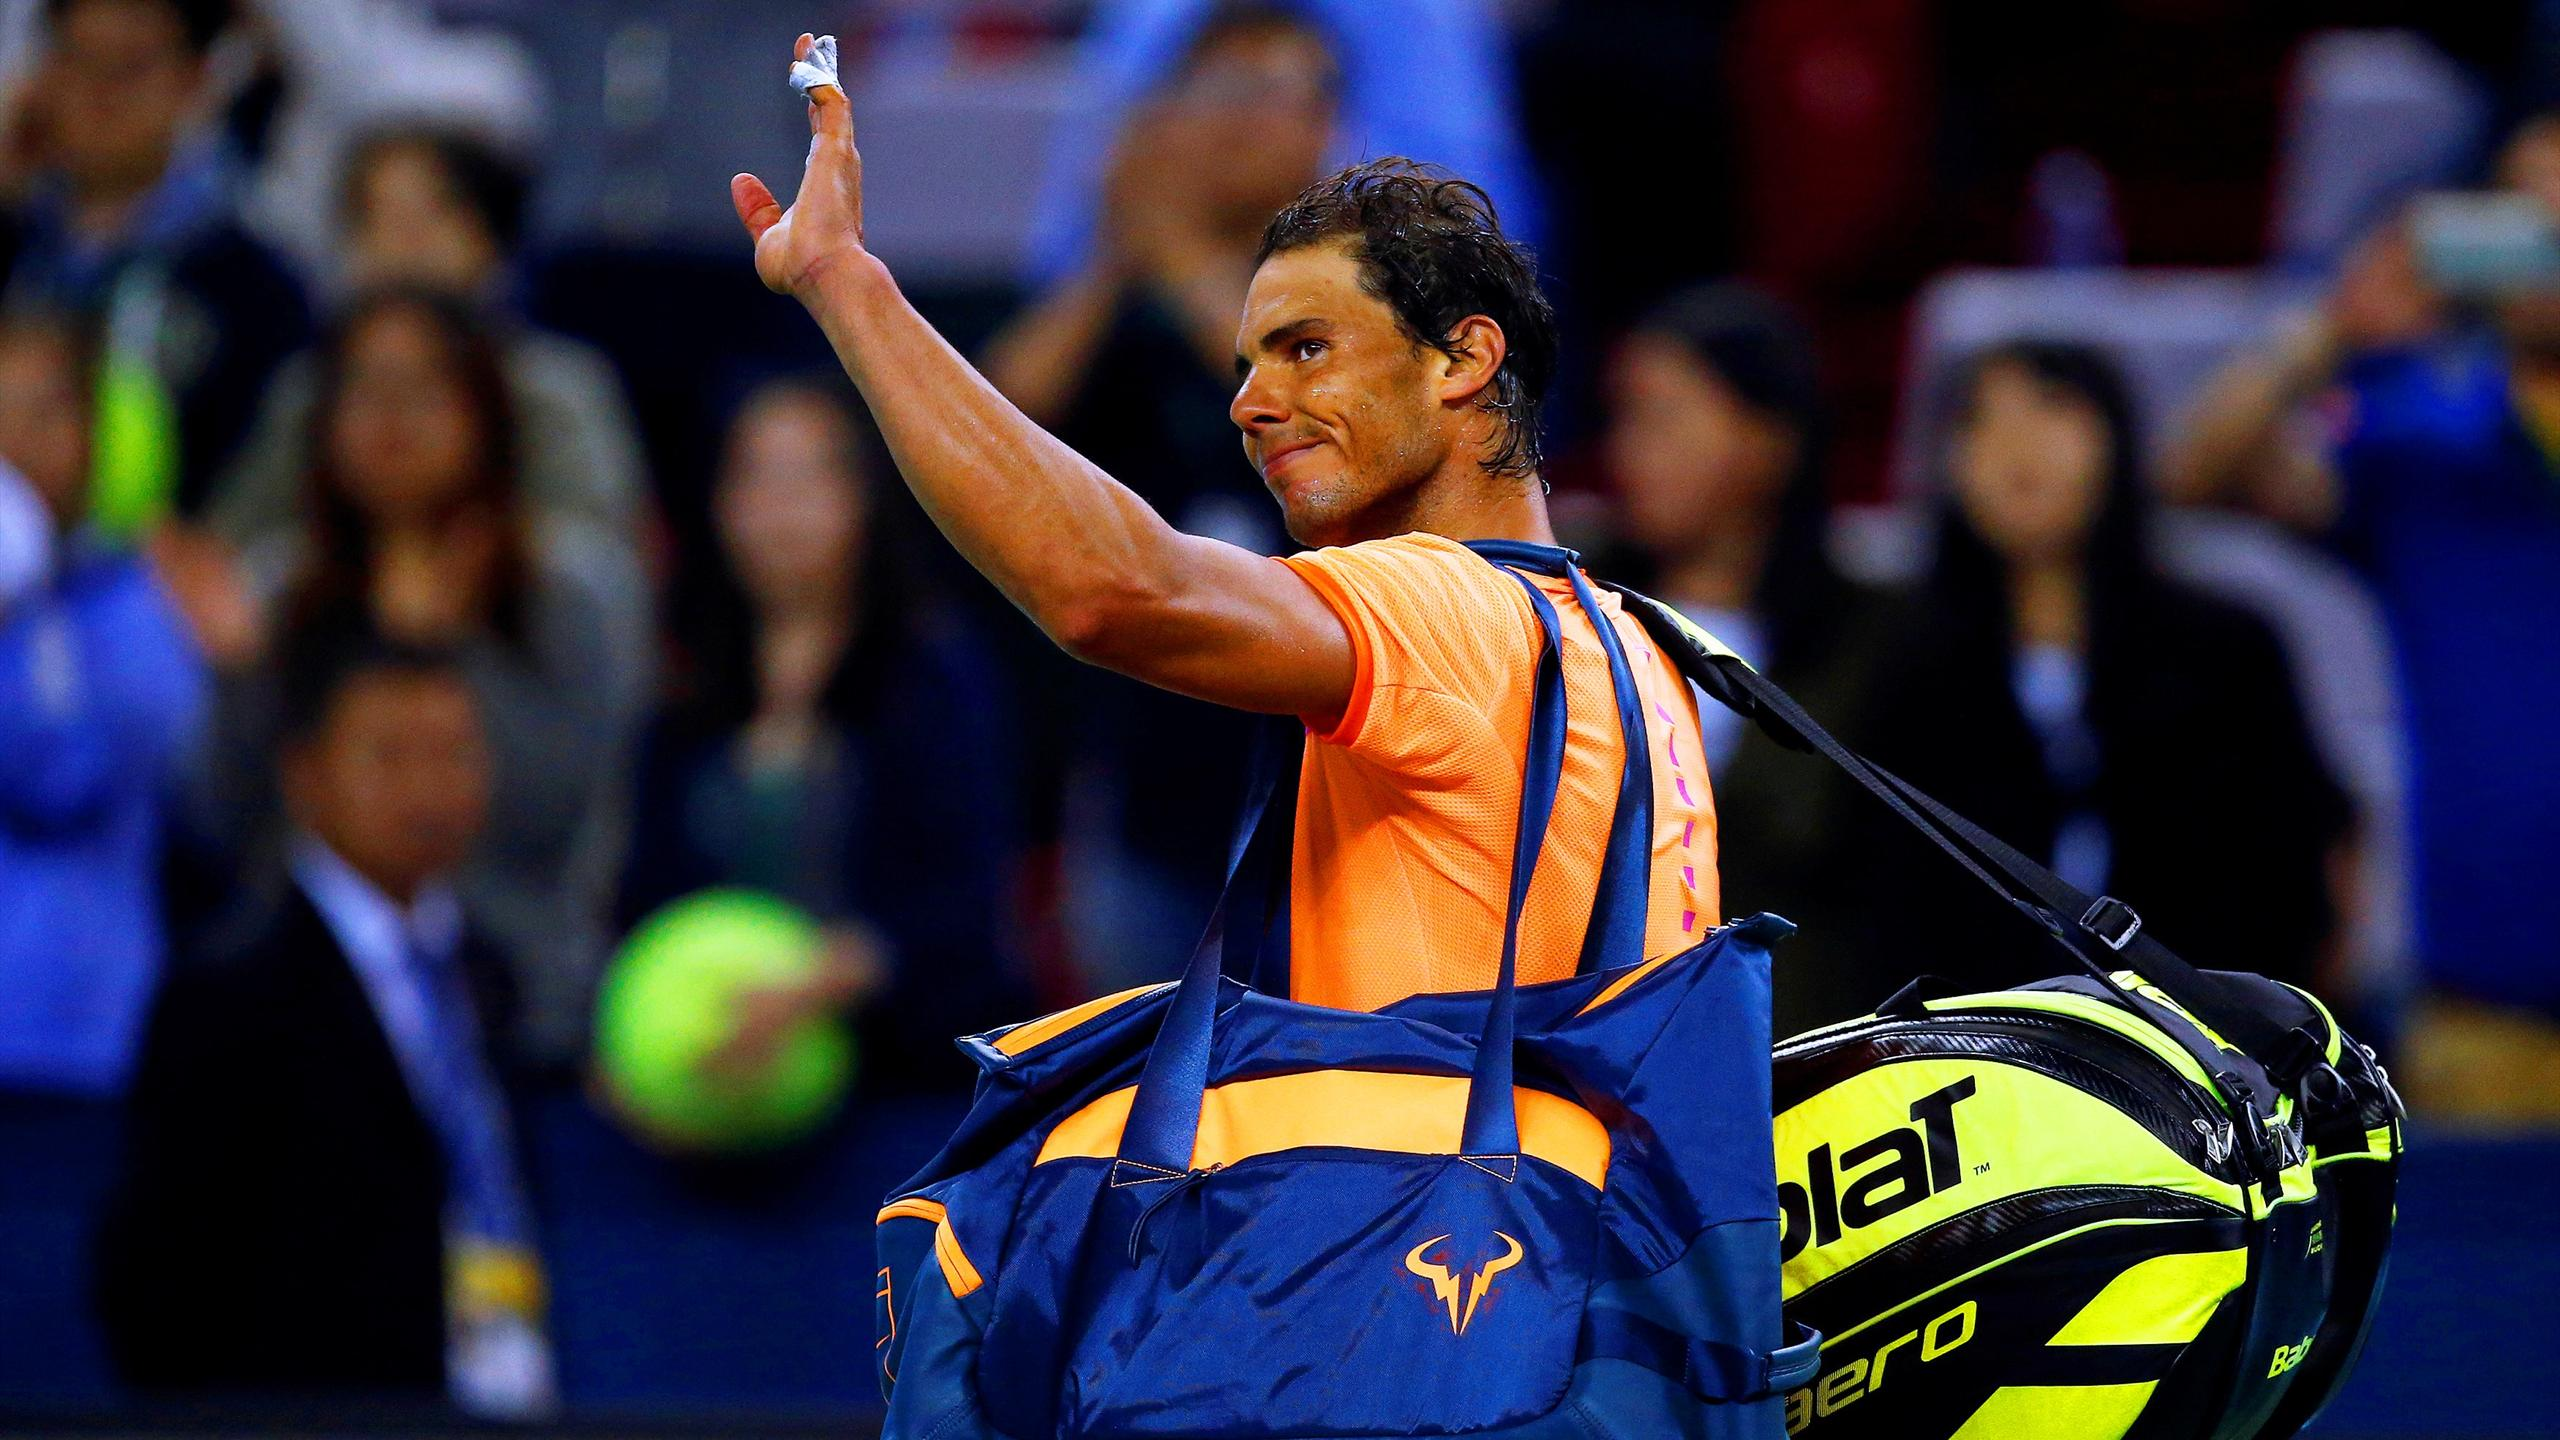 Rafael Nadal of Spain leaves the court after losing at the Shanghai Masters